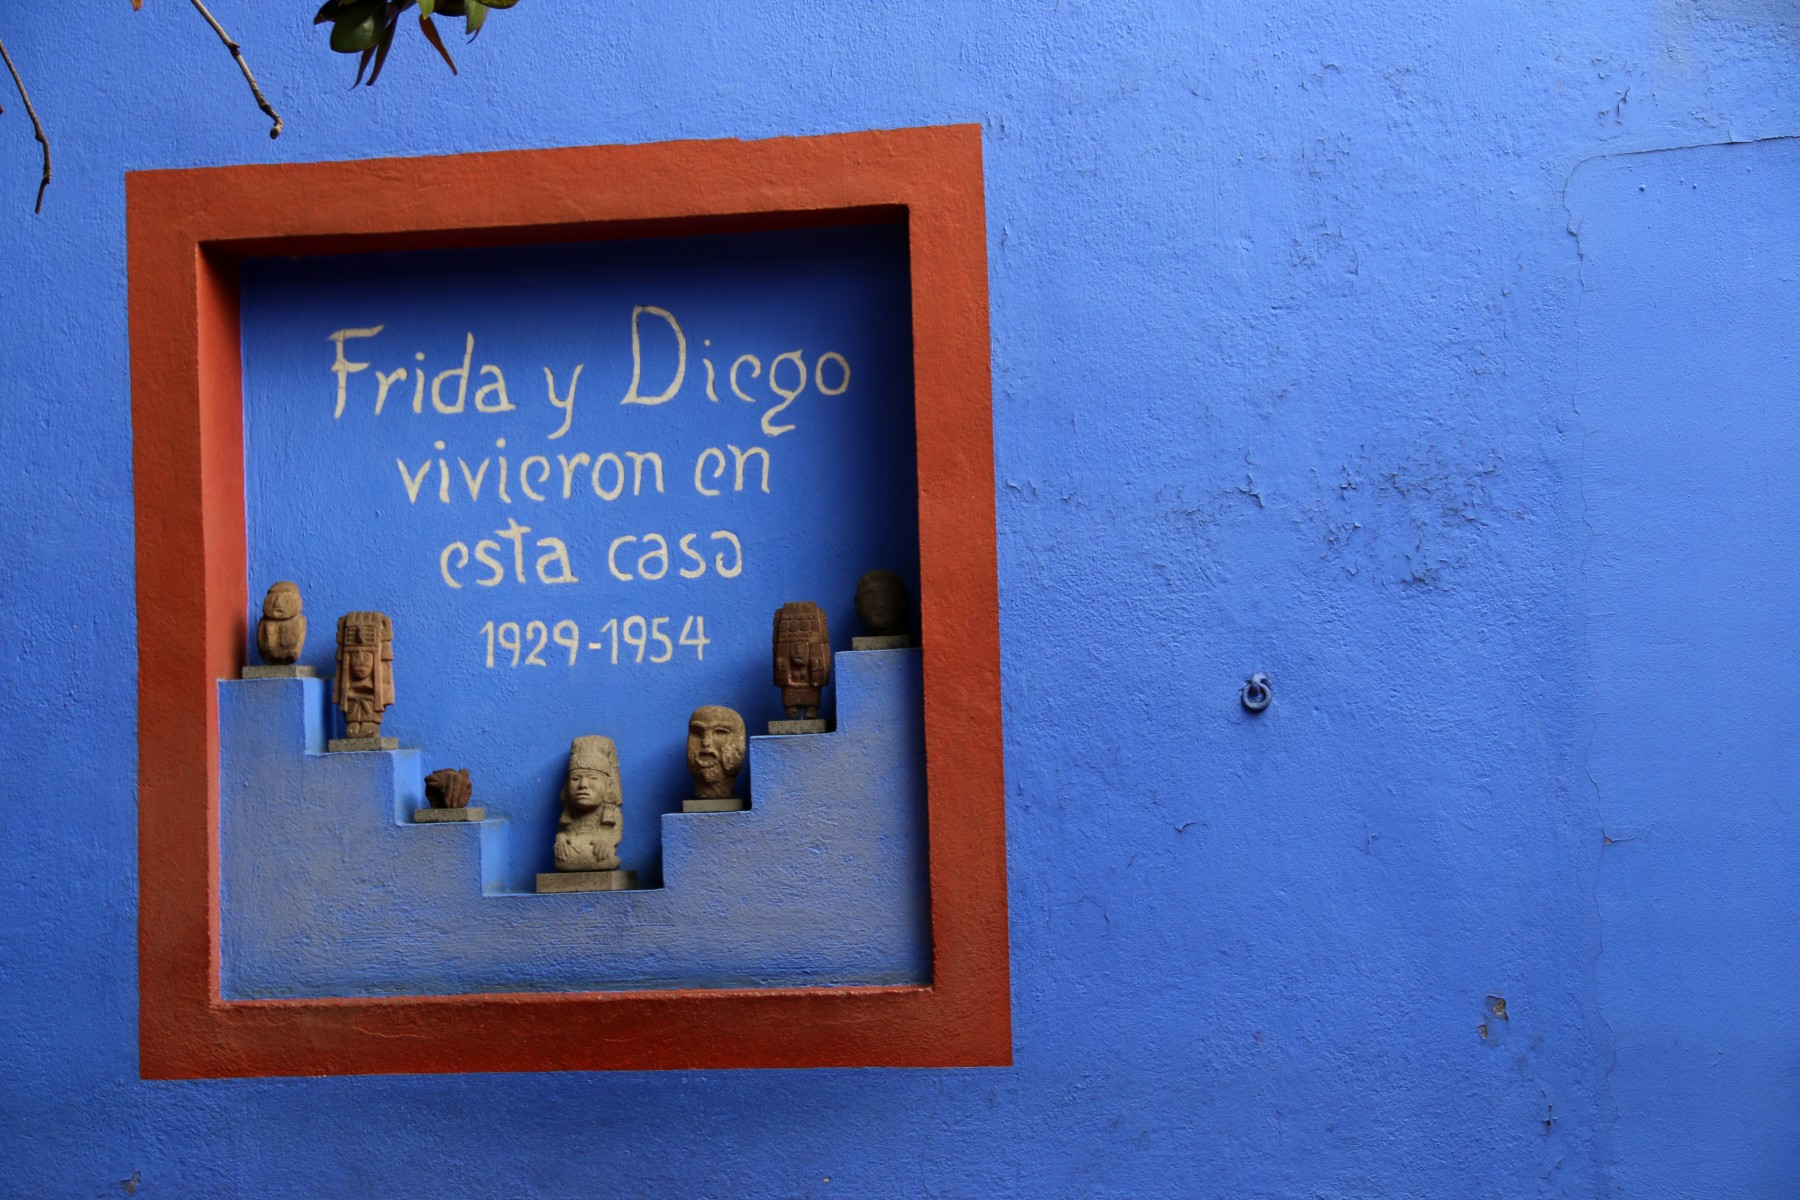 Frida Kahlo Museum - Mexico City